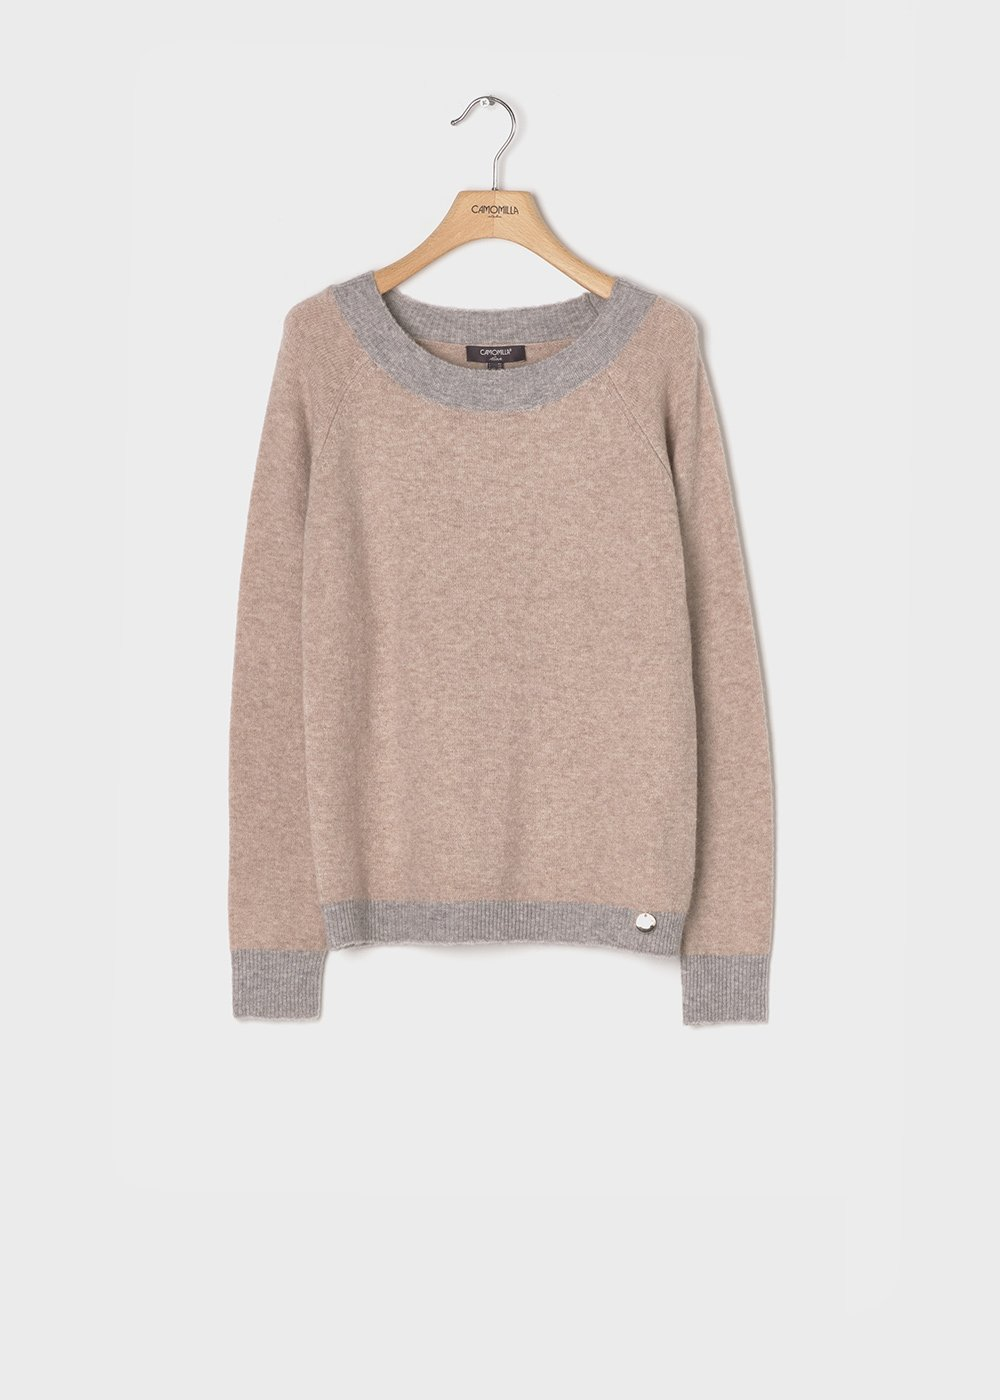 Sweater with mastic-coloured wool and grey contrasts